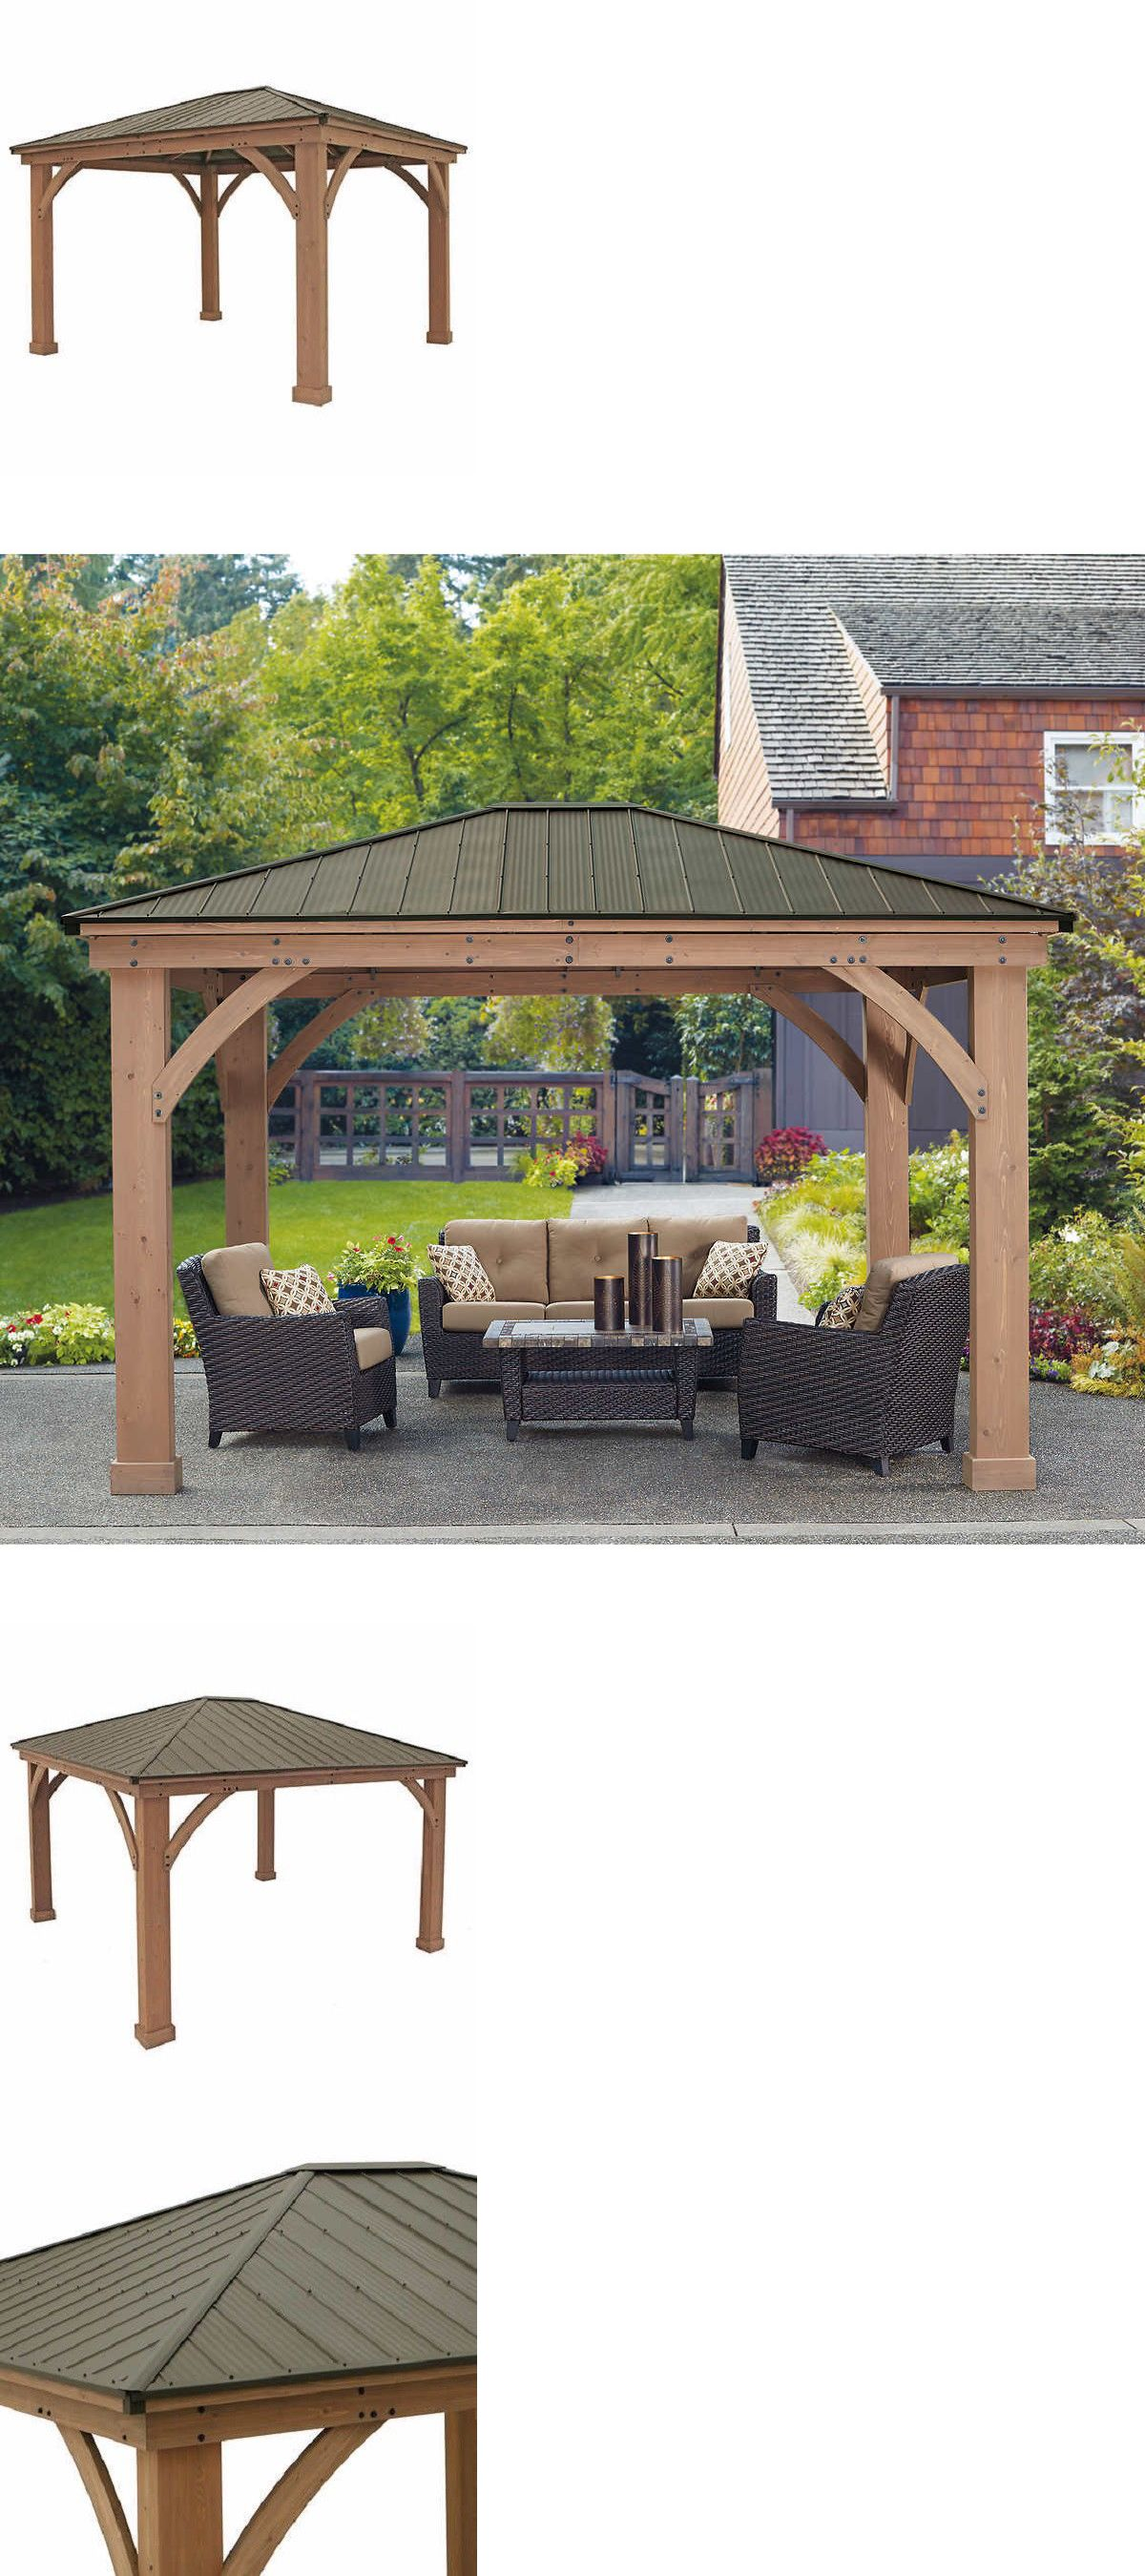 Details About Yardistry 12 X 14 Cedar Gazebo With Aluminum Roof Backyard Gazebo Aluminum Roof Large Gazebo